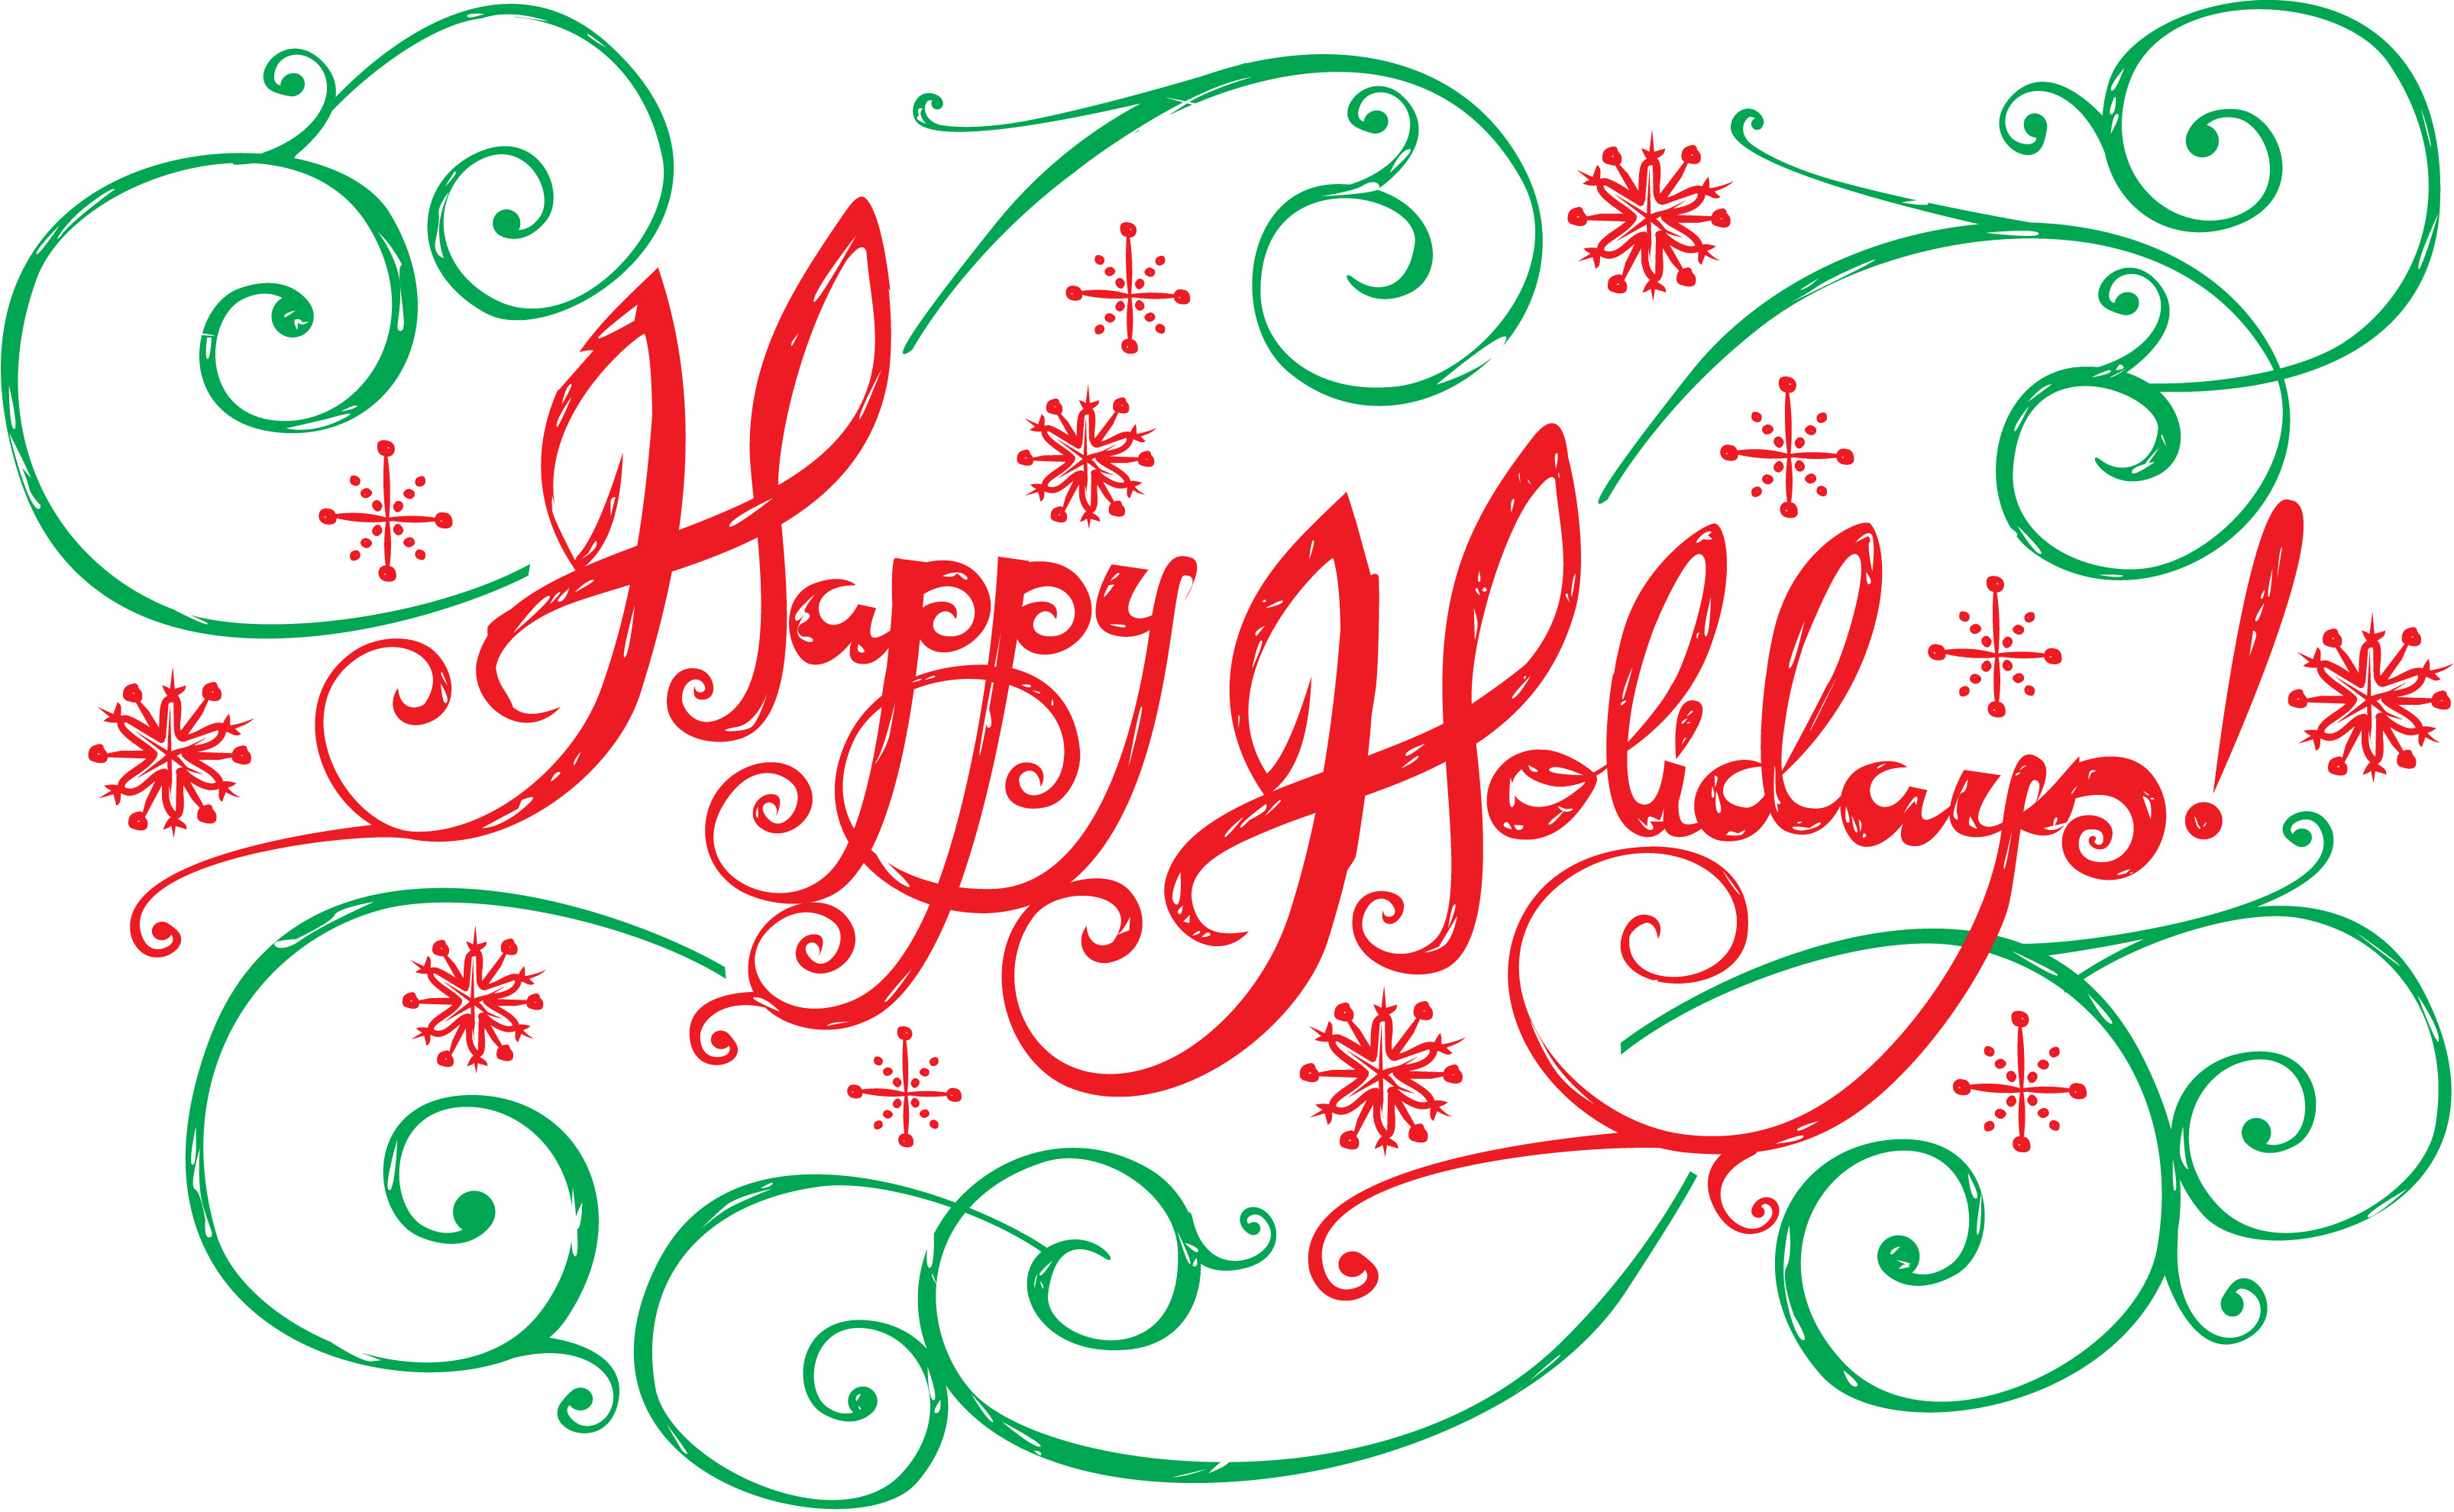 Happy holidays images x. Background clipart holiday